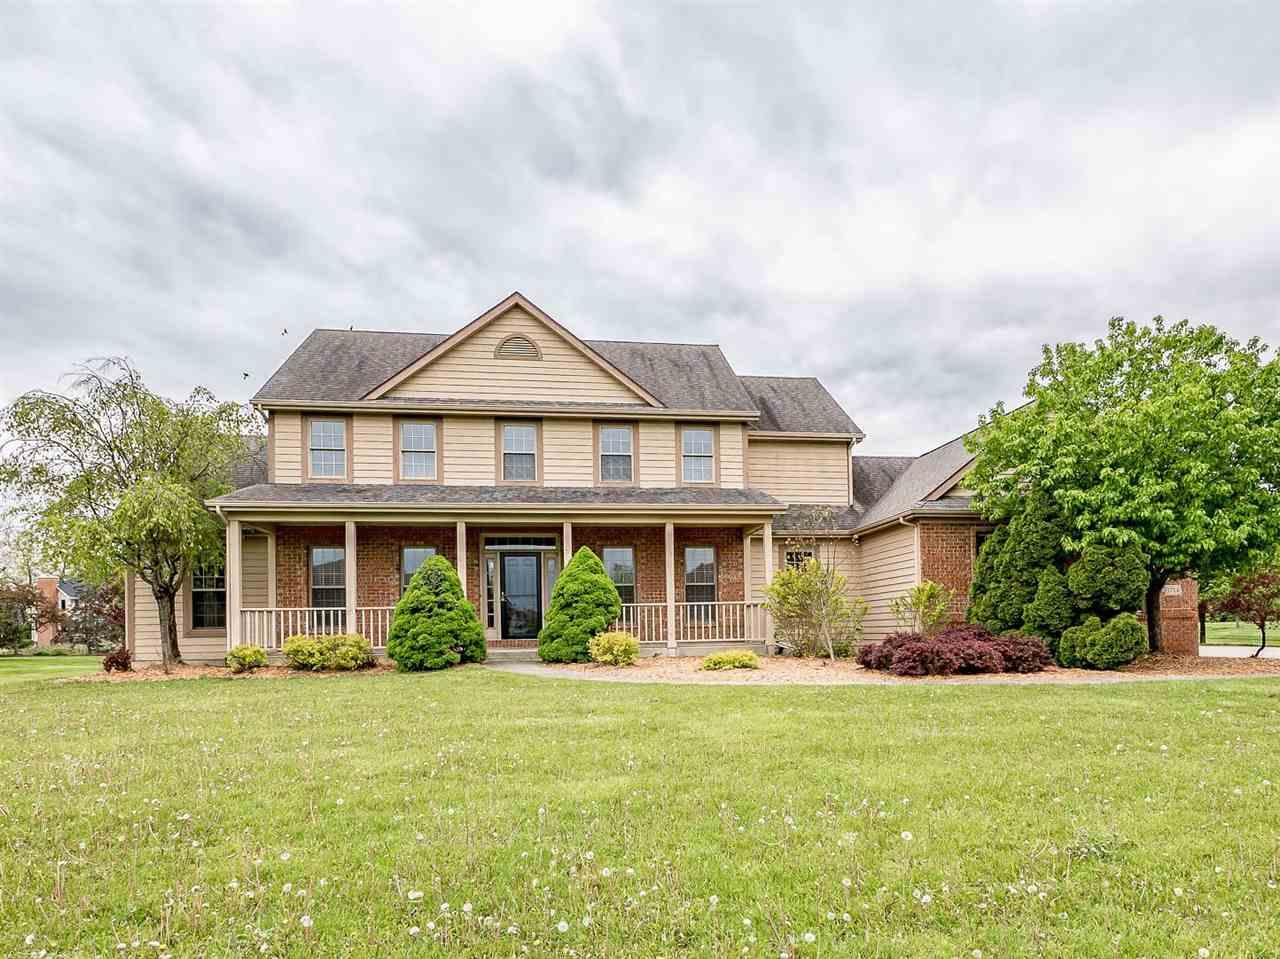 1714 Sycamore Hills Parkway, Fort Wayne, IN 46814